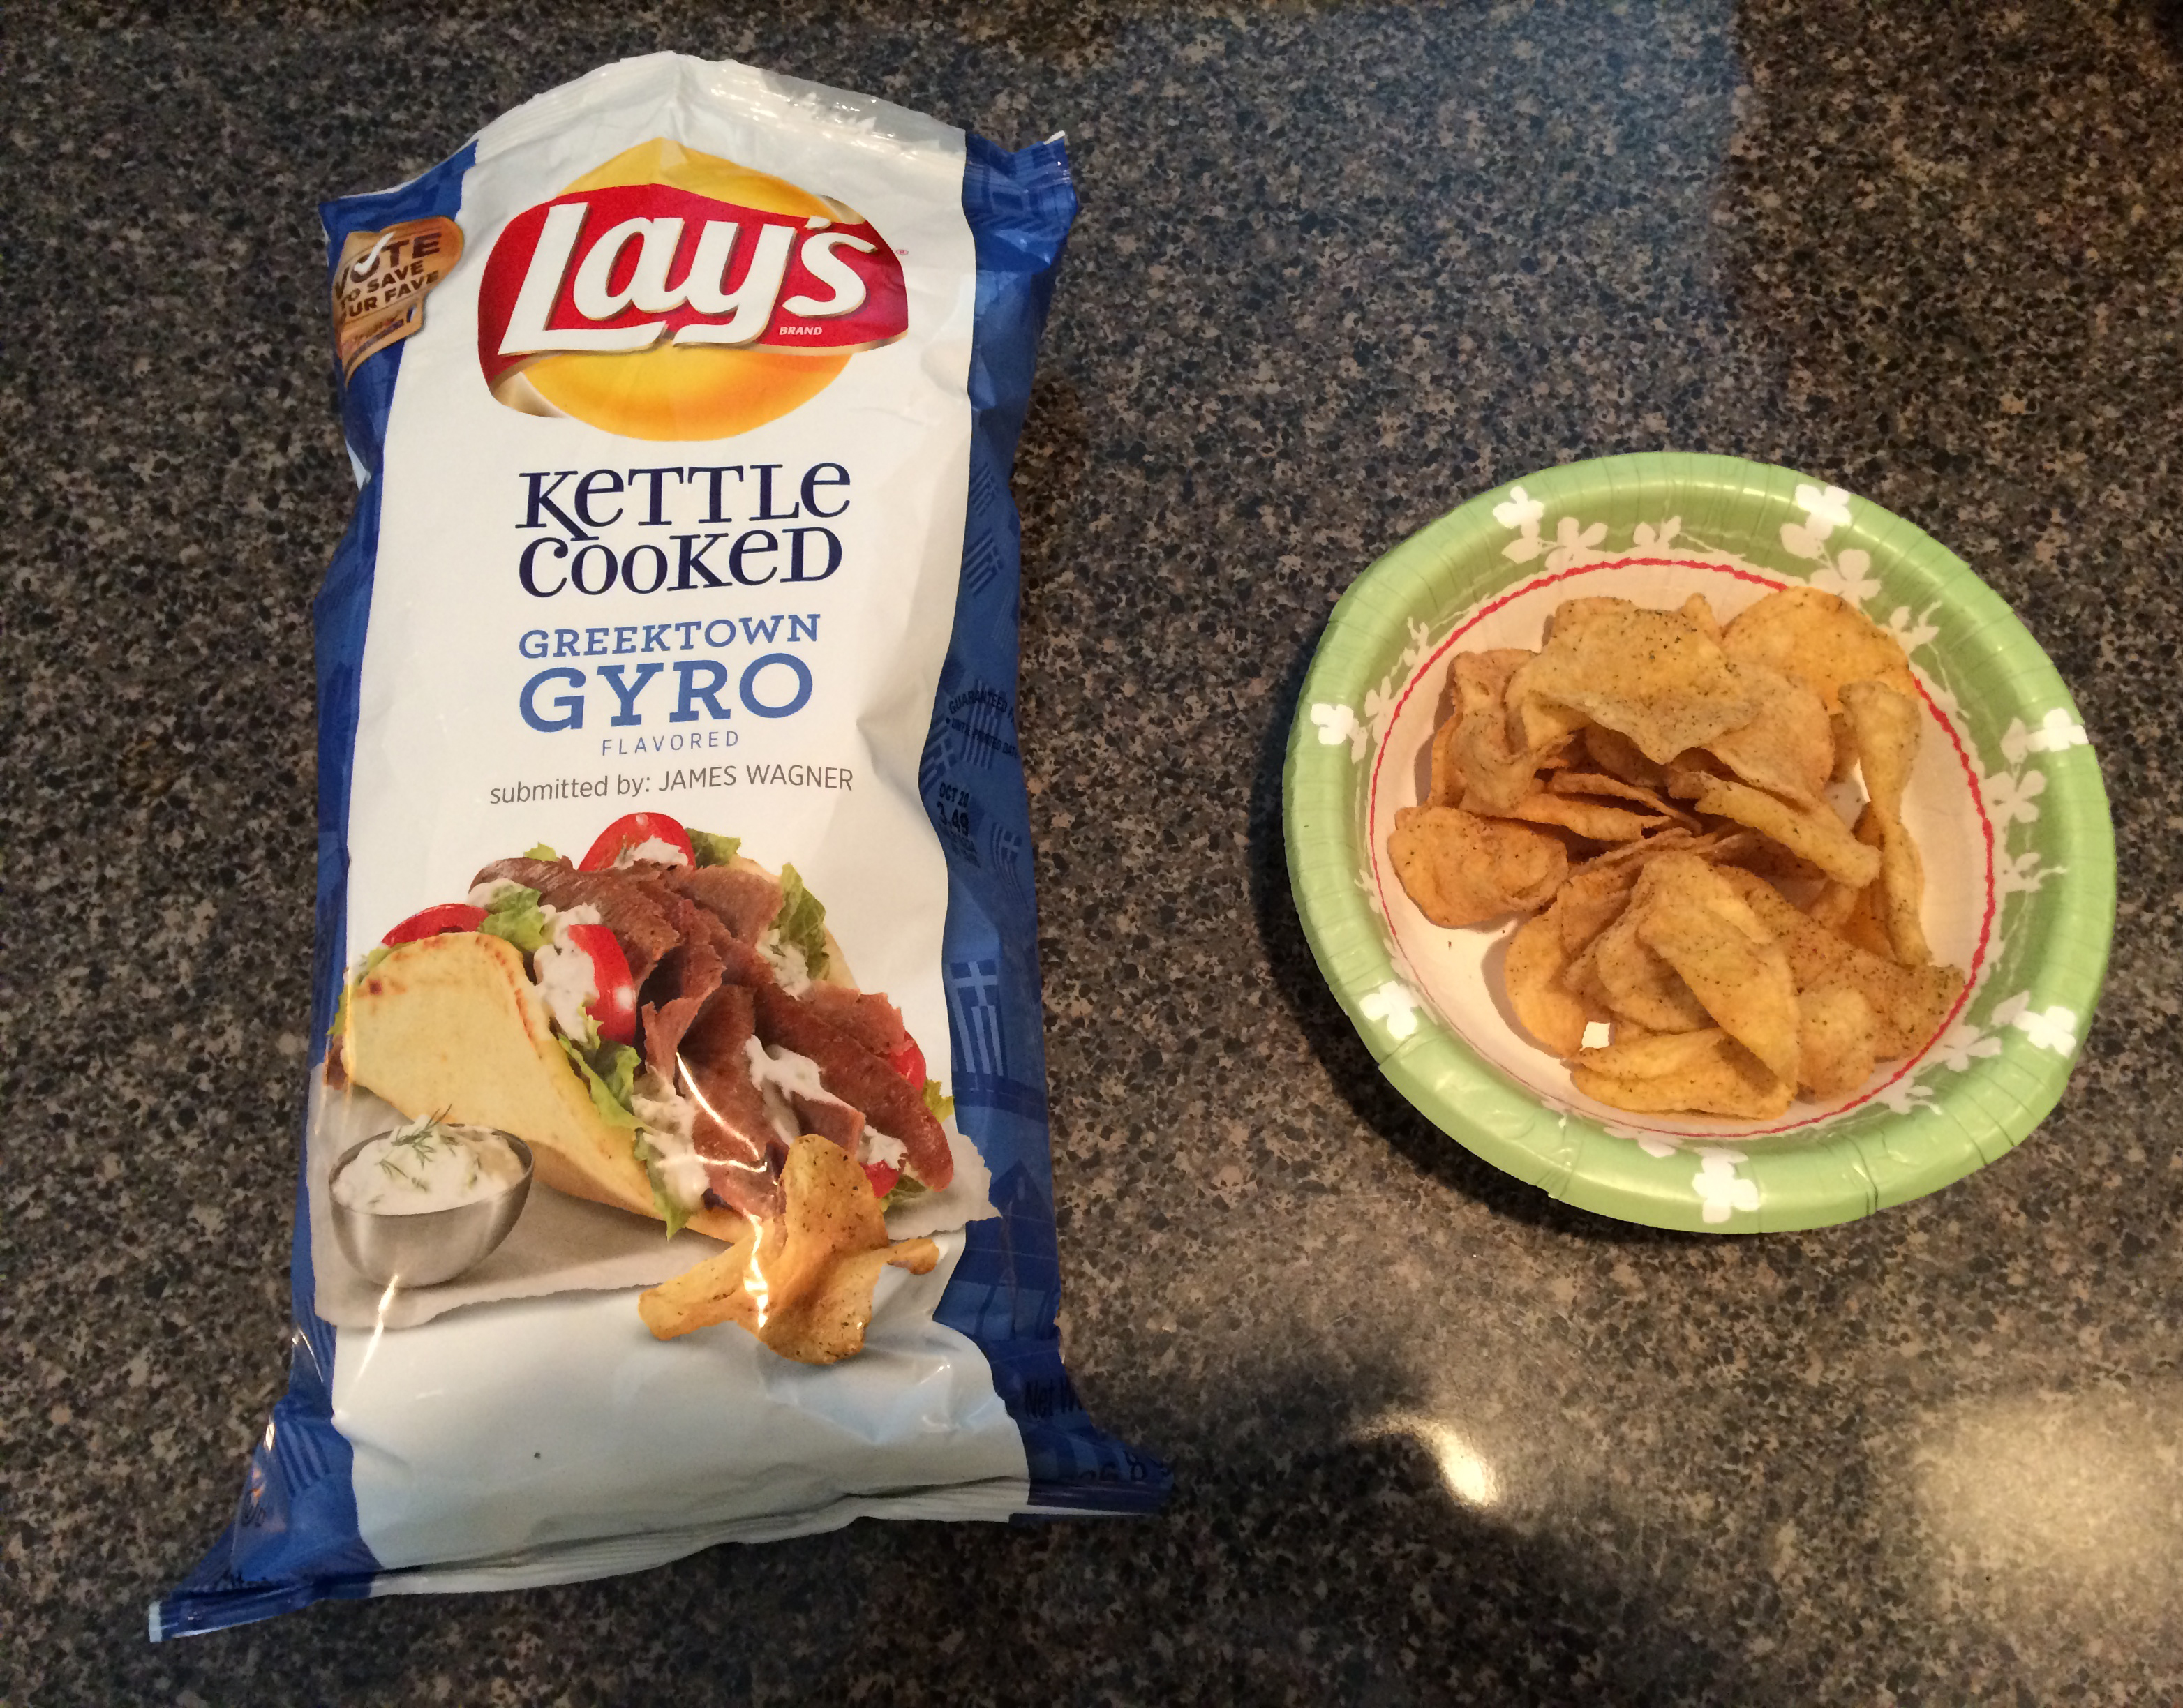 The #DoUsAFlavor Kettle Cooked Greektown Gyro chips had a sour cream and onion flavor.